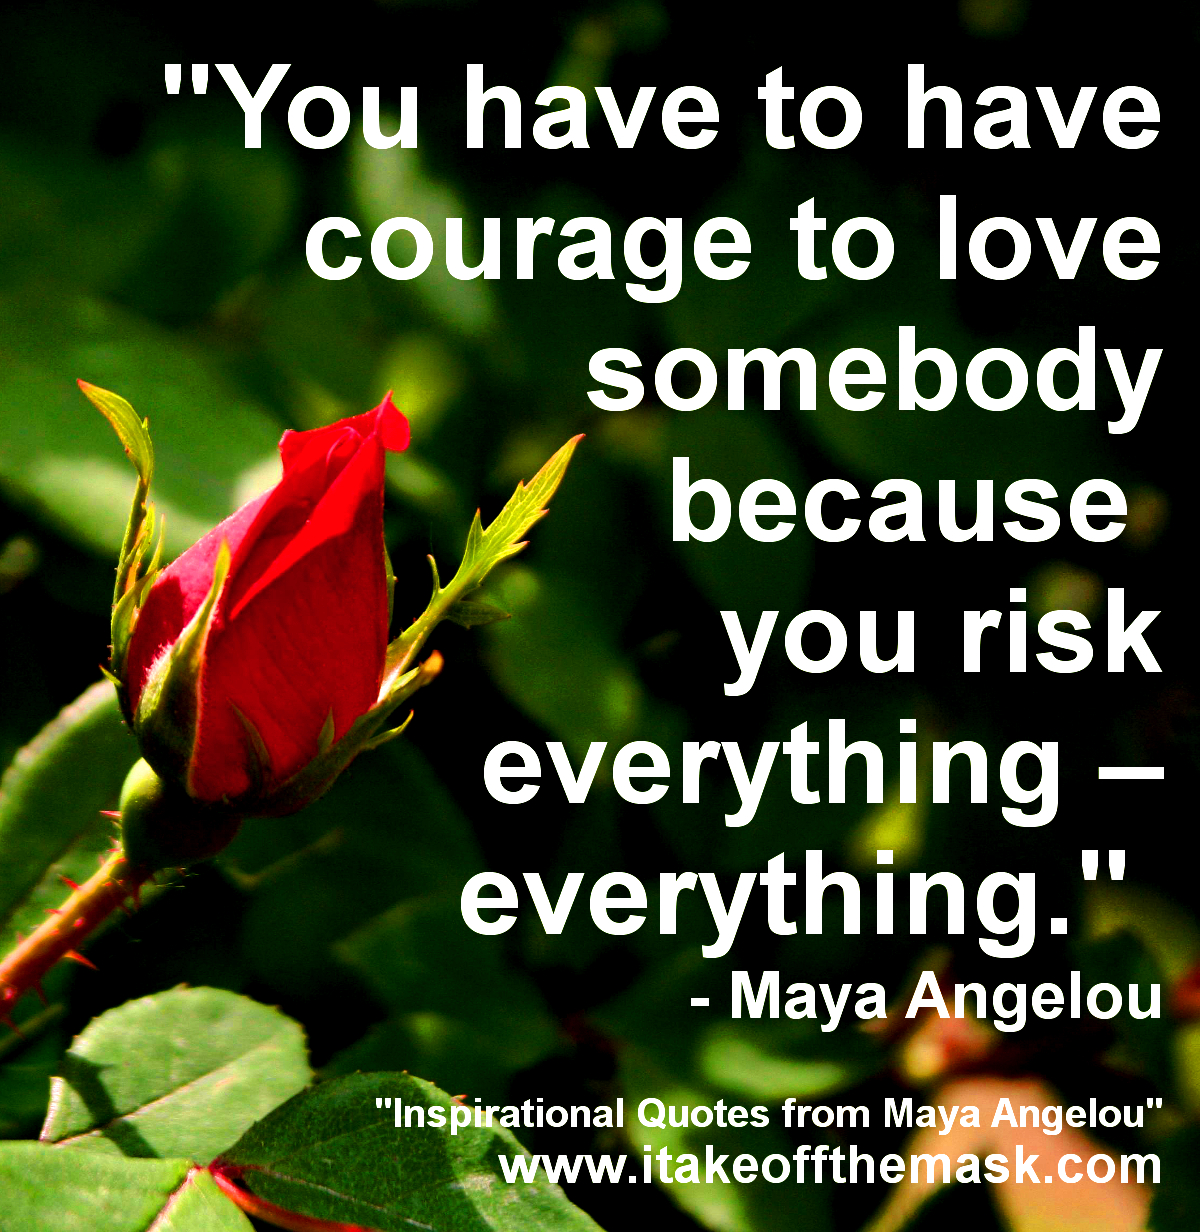 Inspirational Quotes From Maya Angelou Part 2 Best Life Quotes